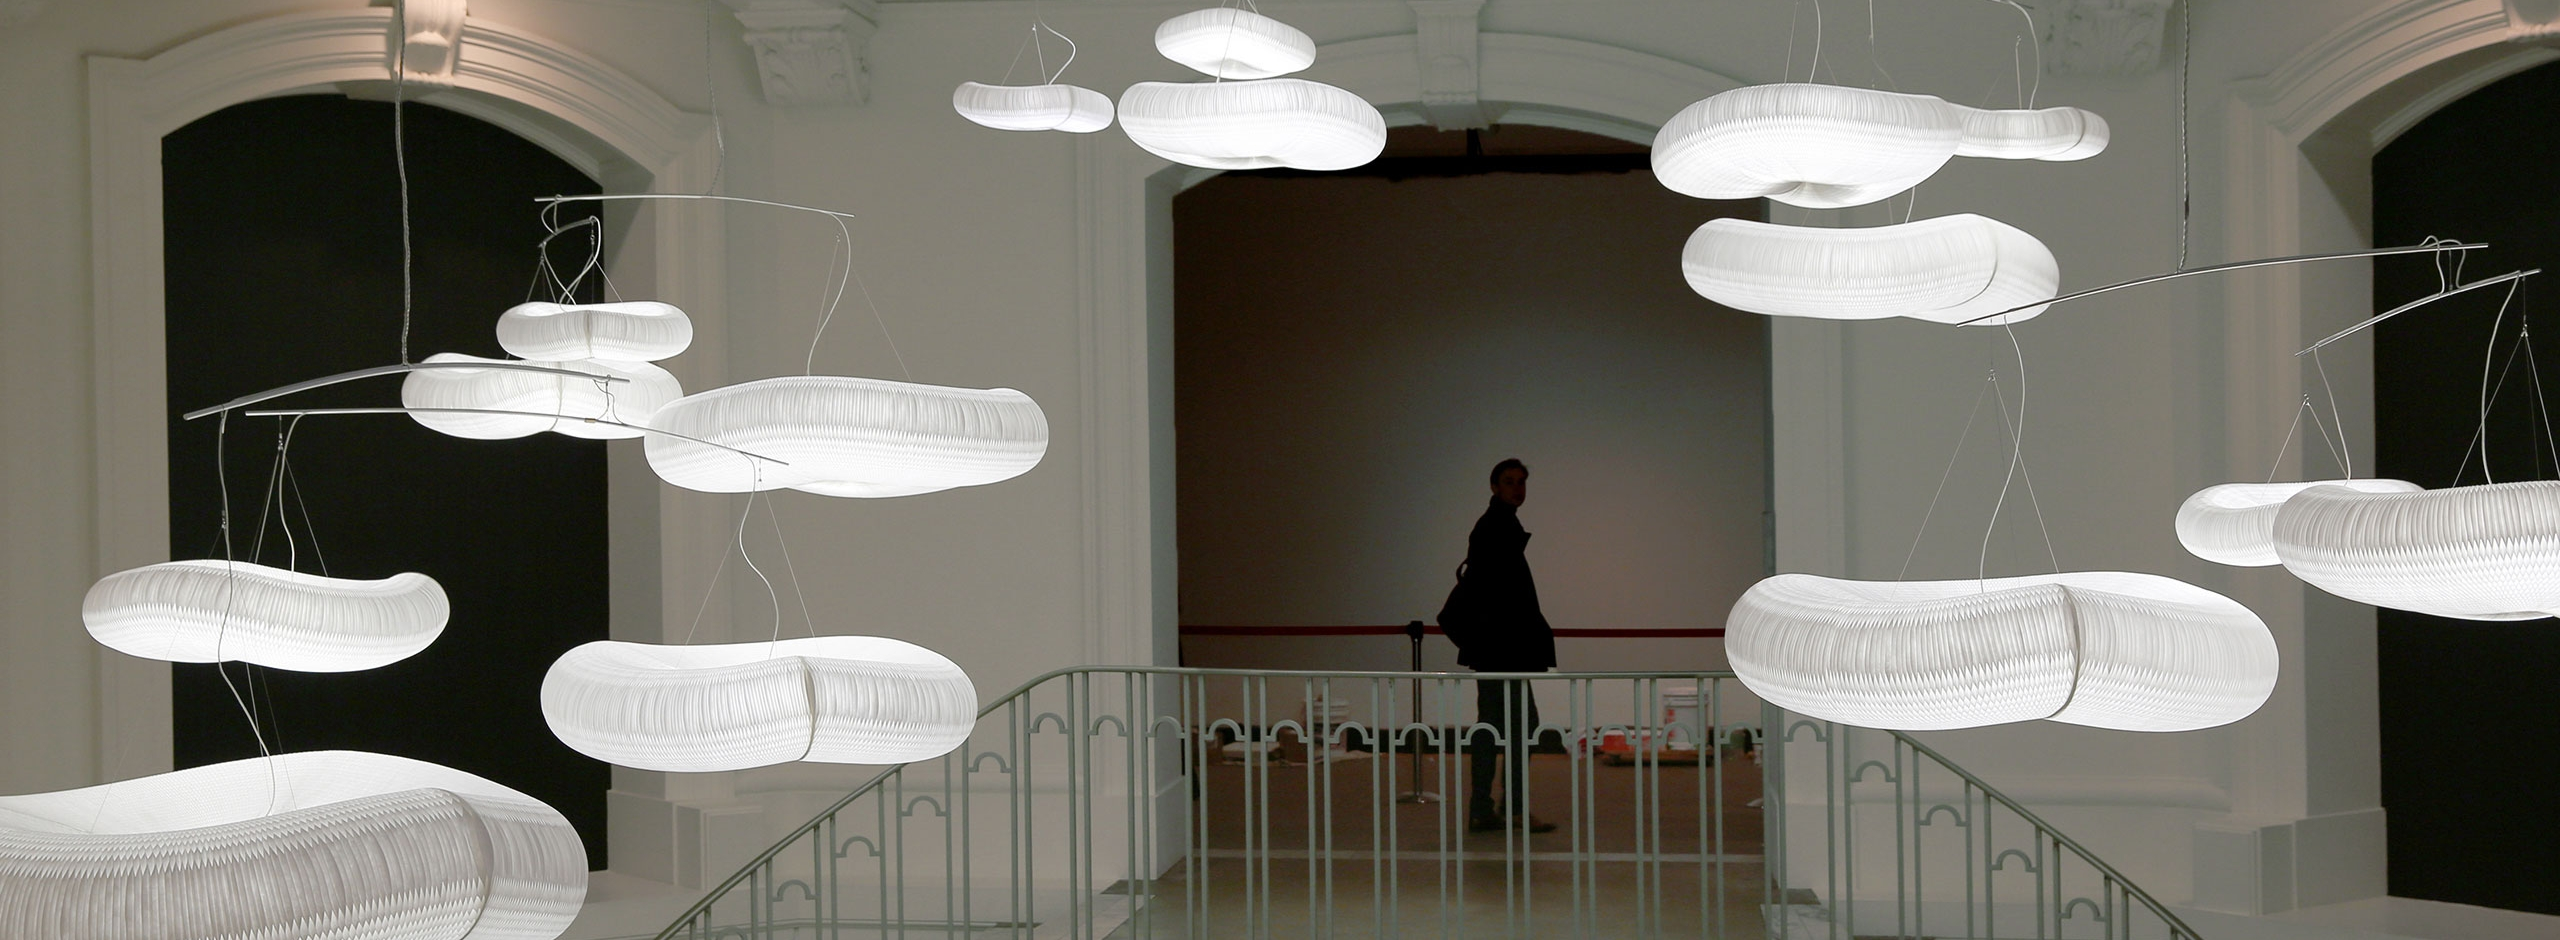 """cloud mobiles installed in the Vancouver Art Gallery's """"Grand Hotel"""" exhibition"""